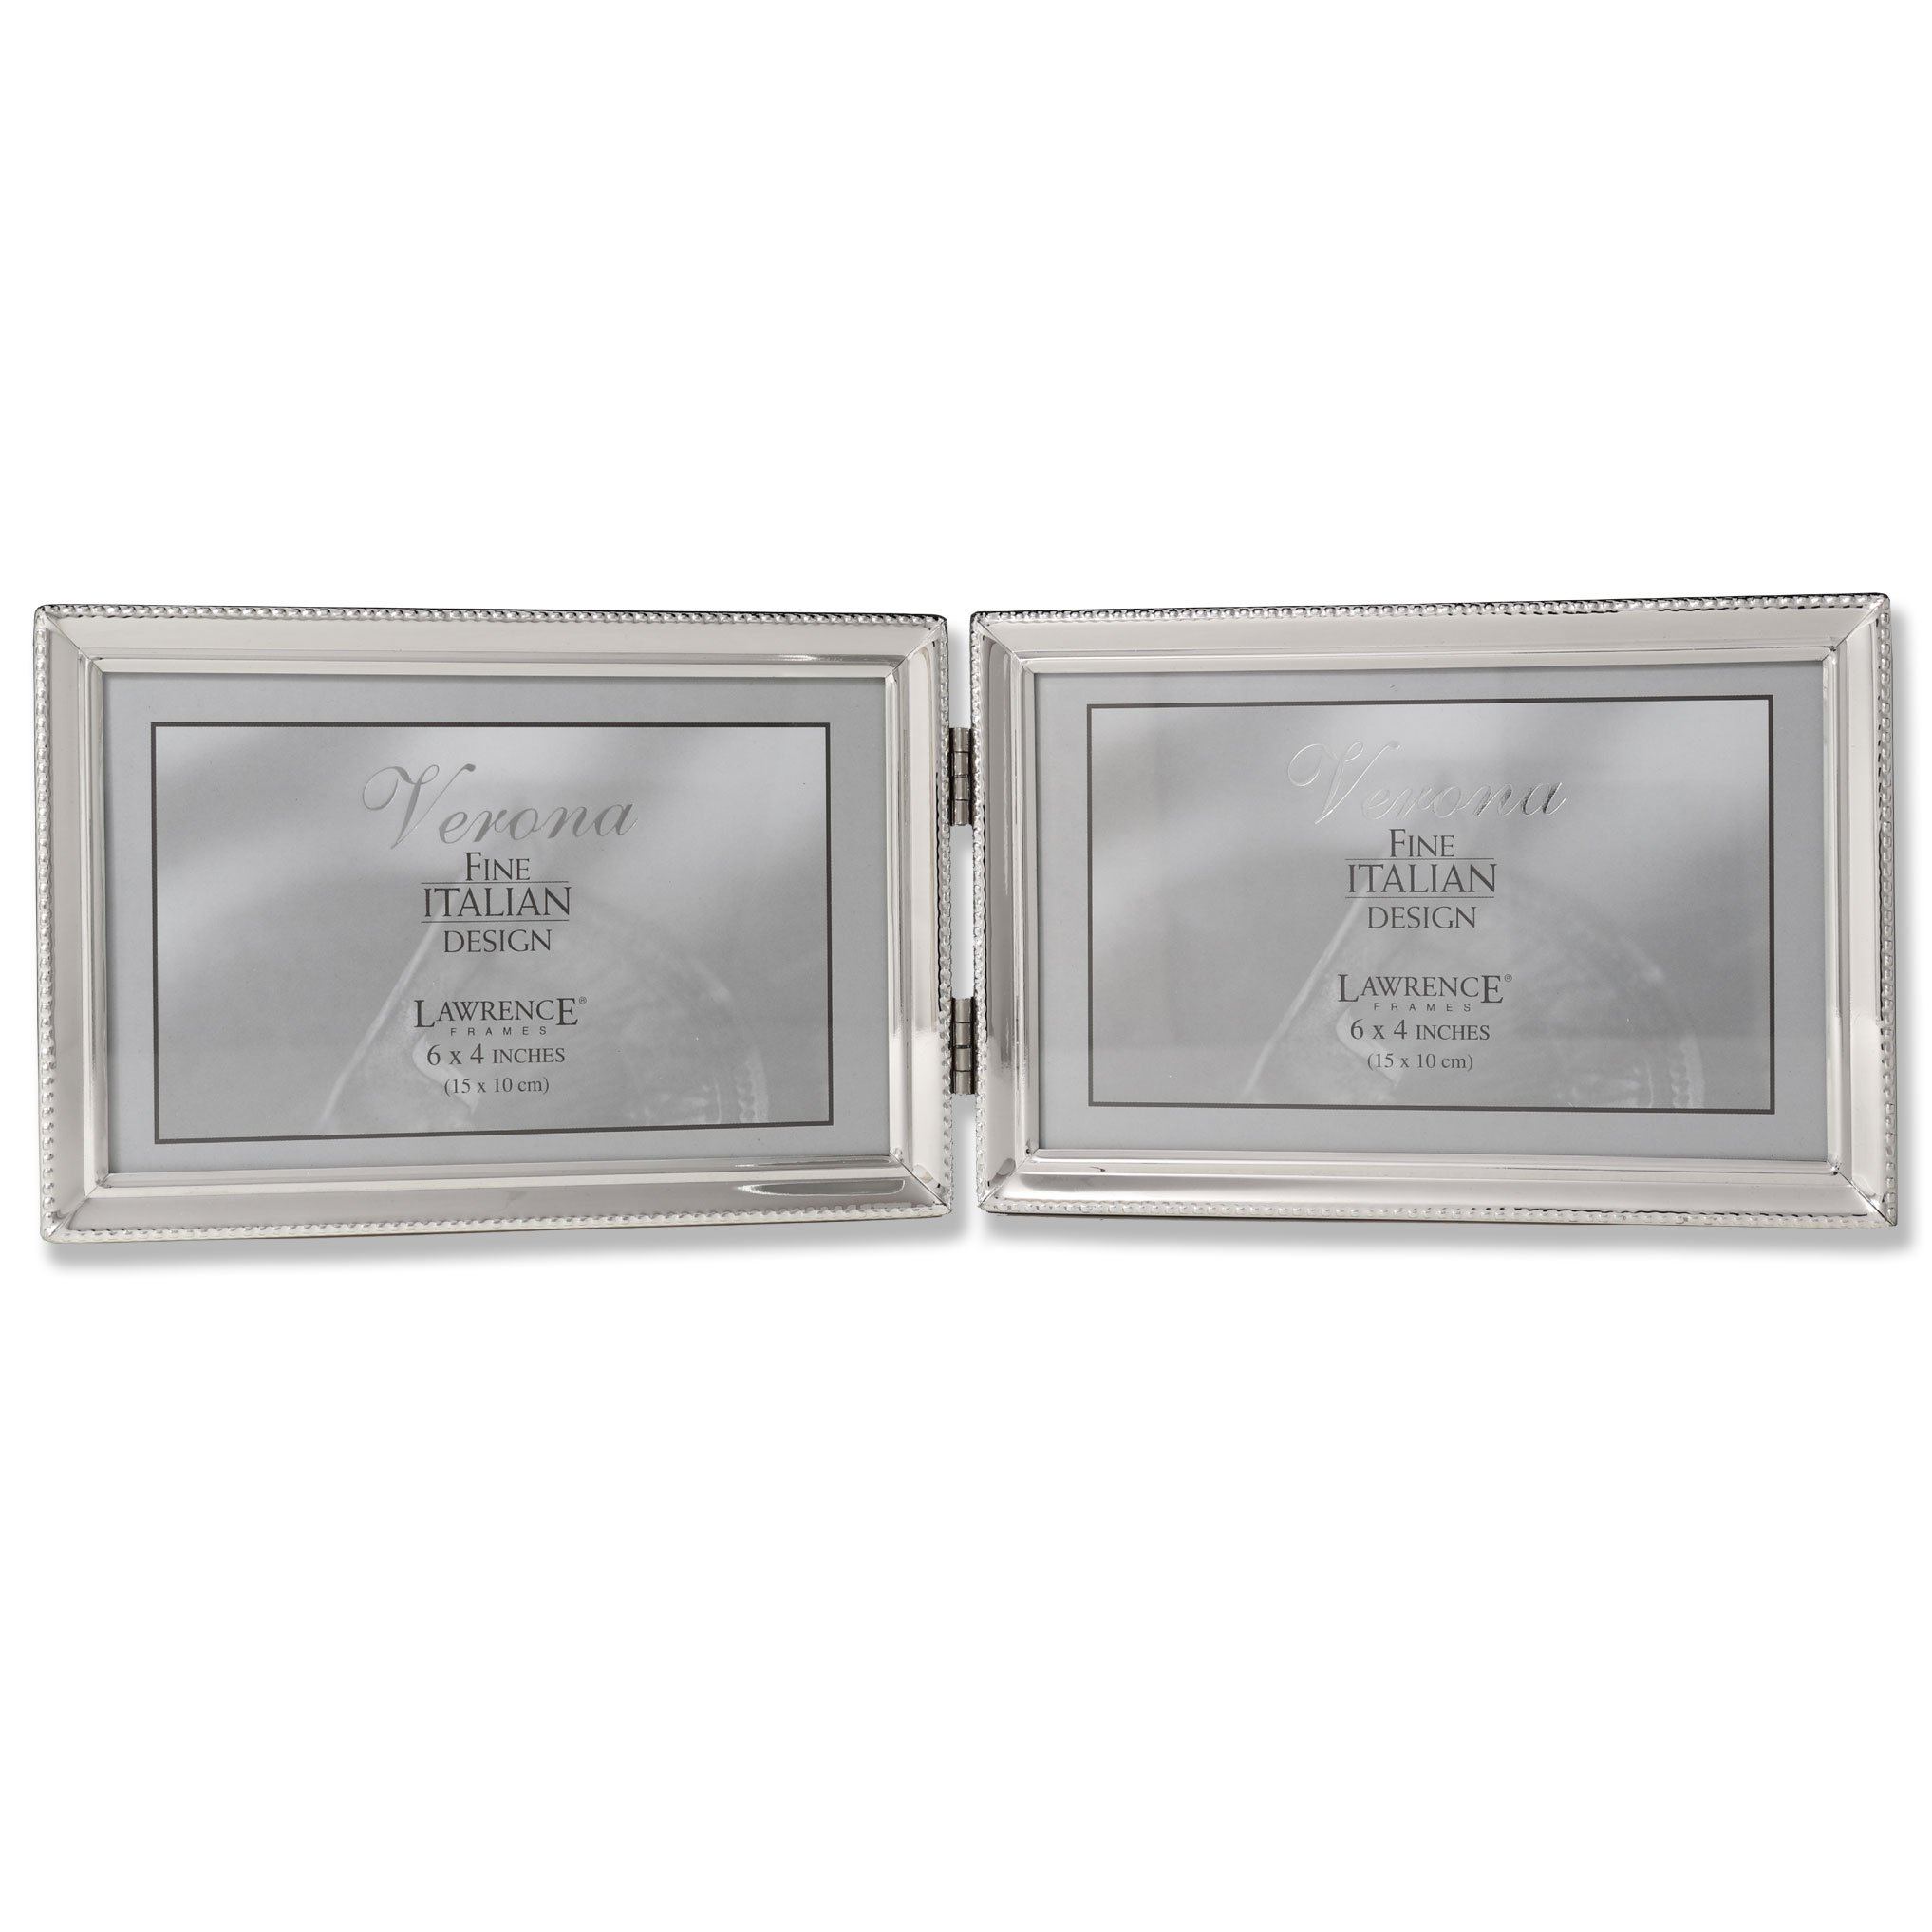 Lawrence Frames Polished Silver Plate 4x6 Hinged Double Horizontal Picture Frame - Bead Border Design